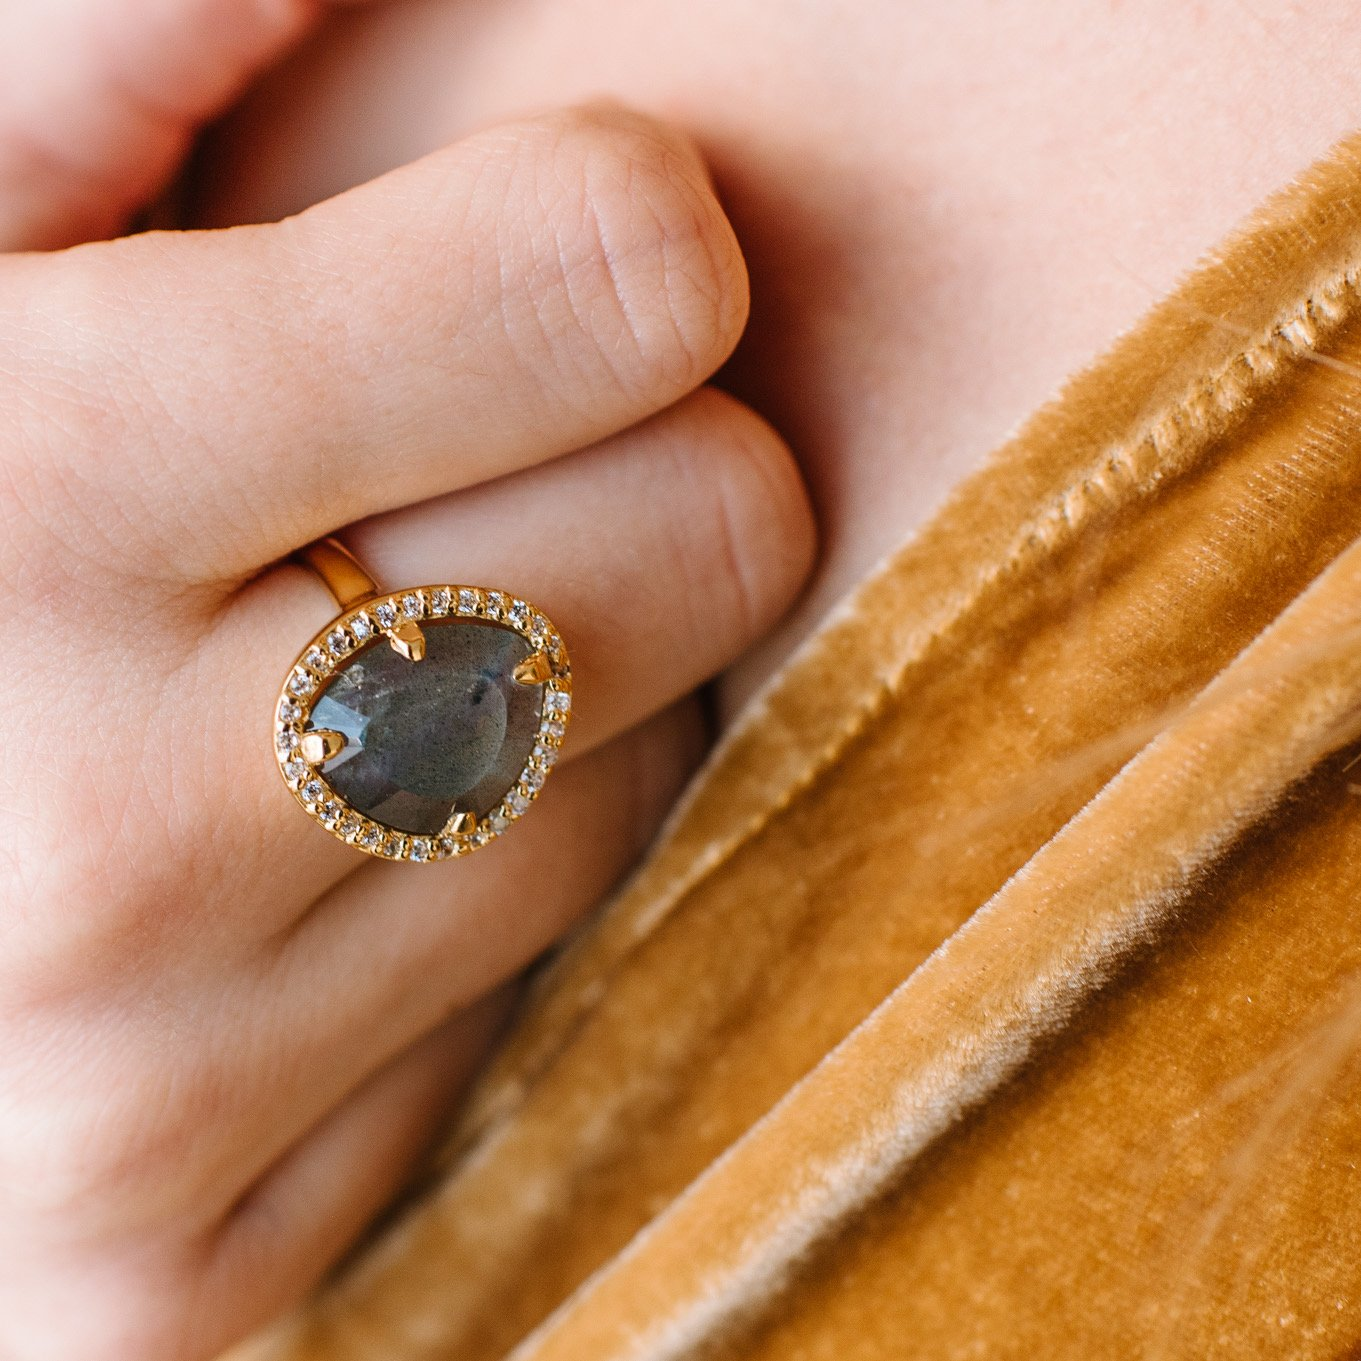 DREAM LUNA COCKTAIL RING - LABRADORITE, CUBIC ZIRCONIA & GOLD